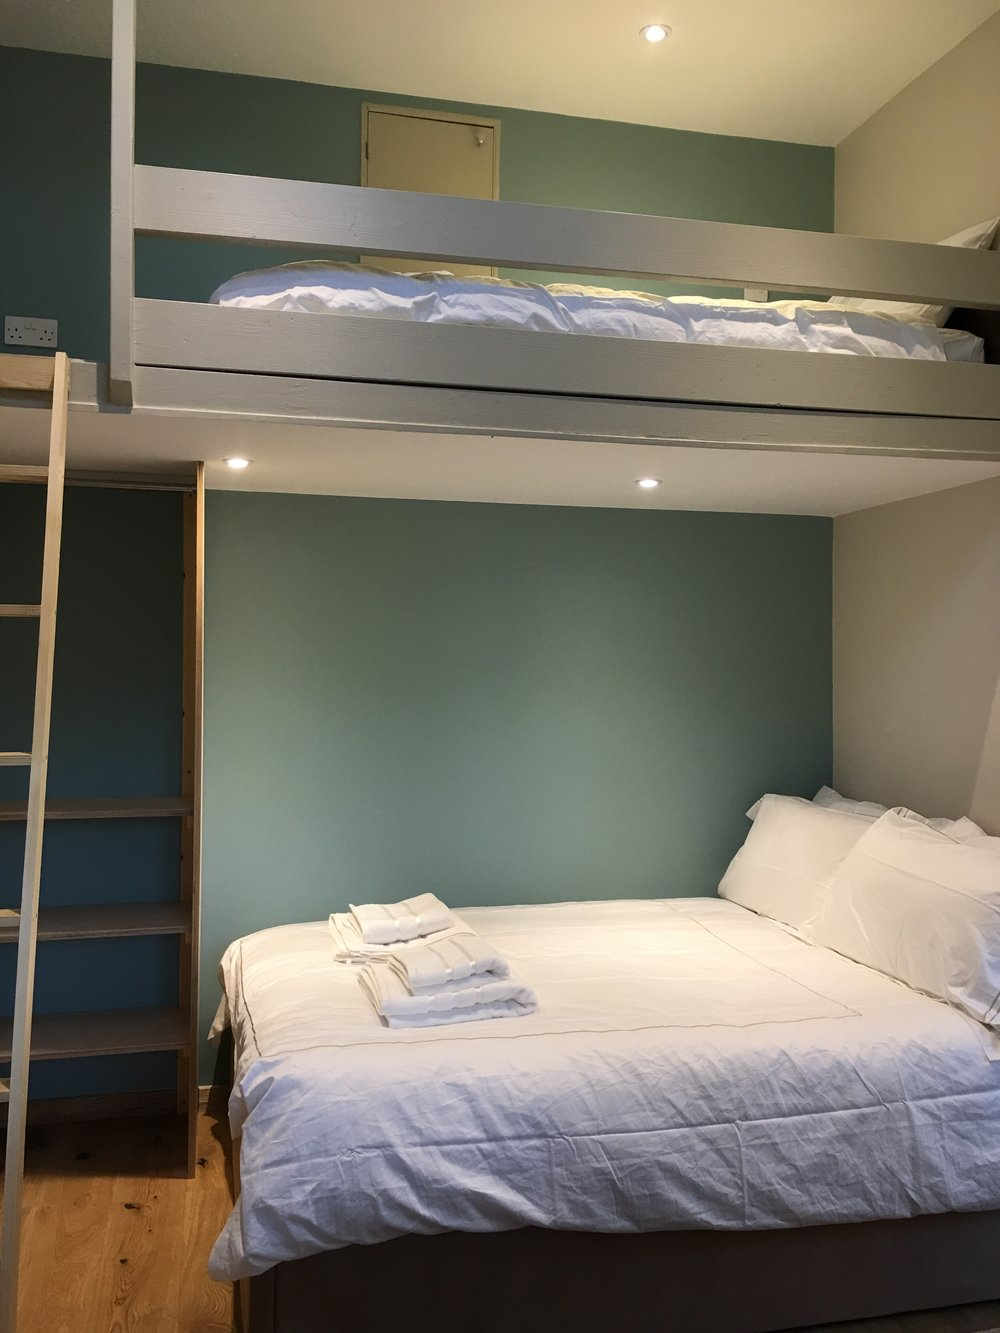 Bedroom 2. A double bed and a single bunk above